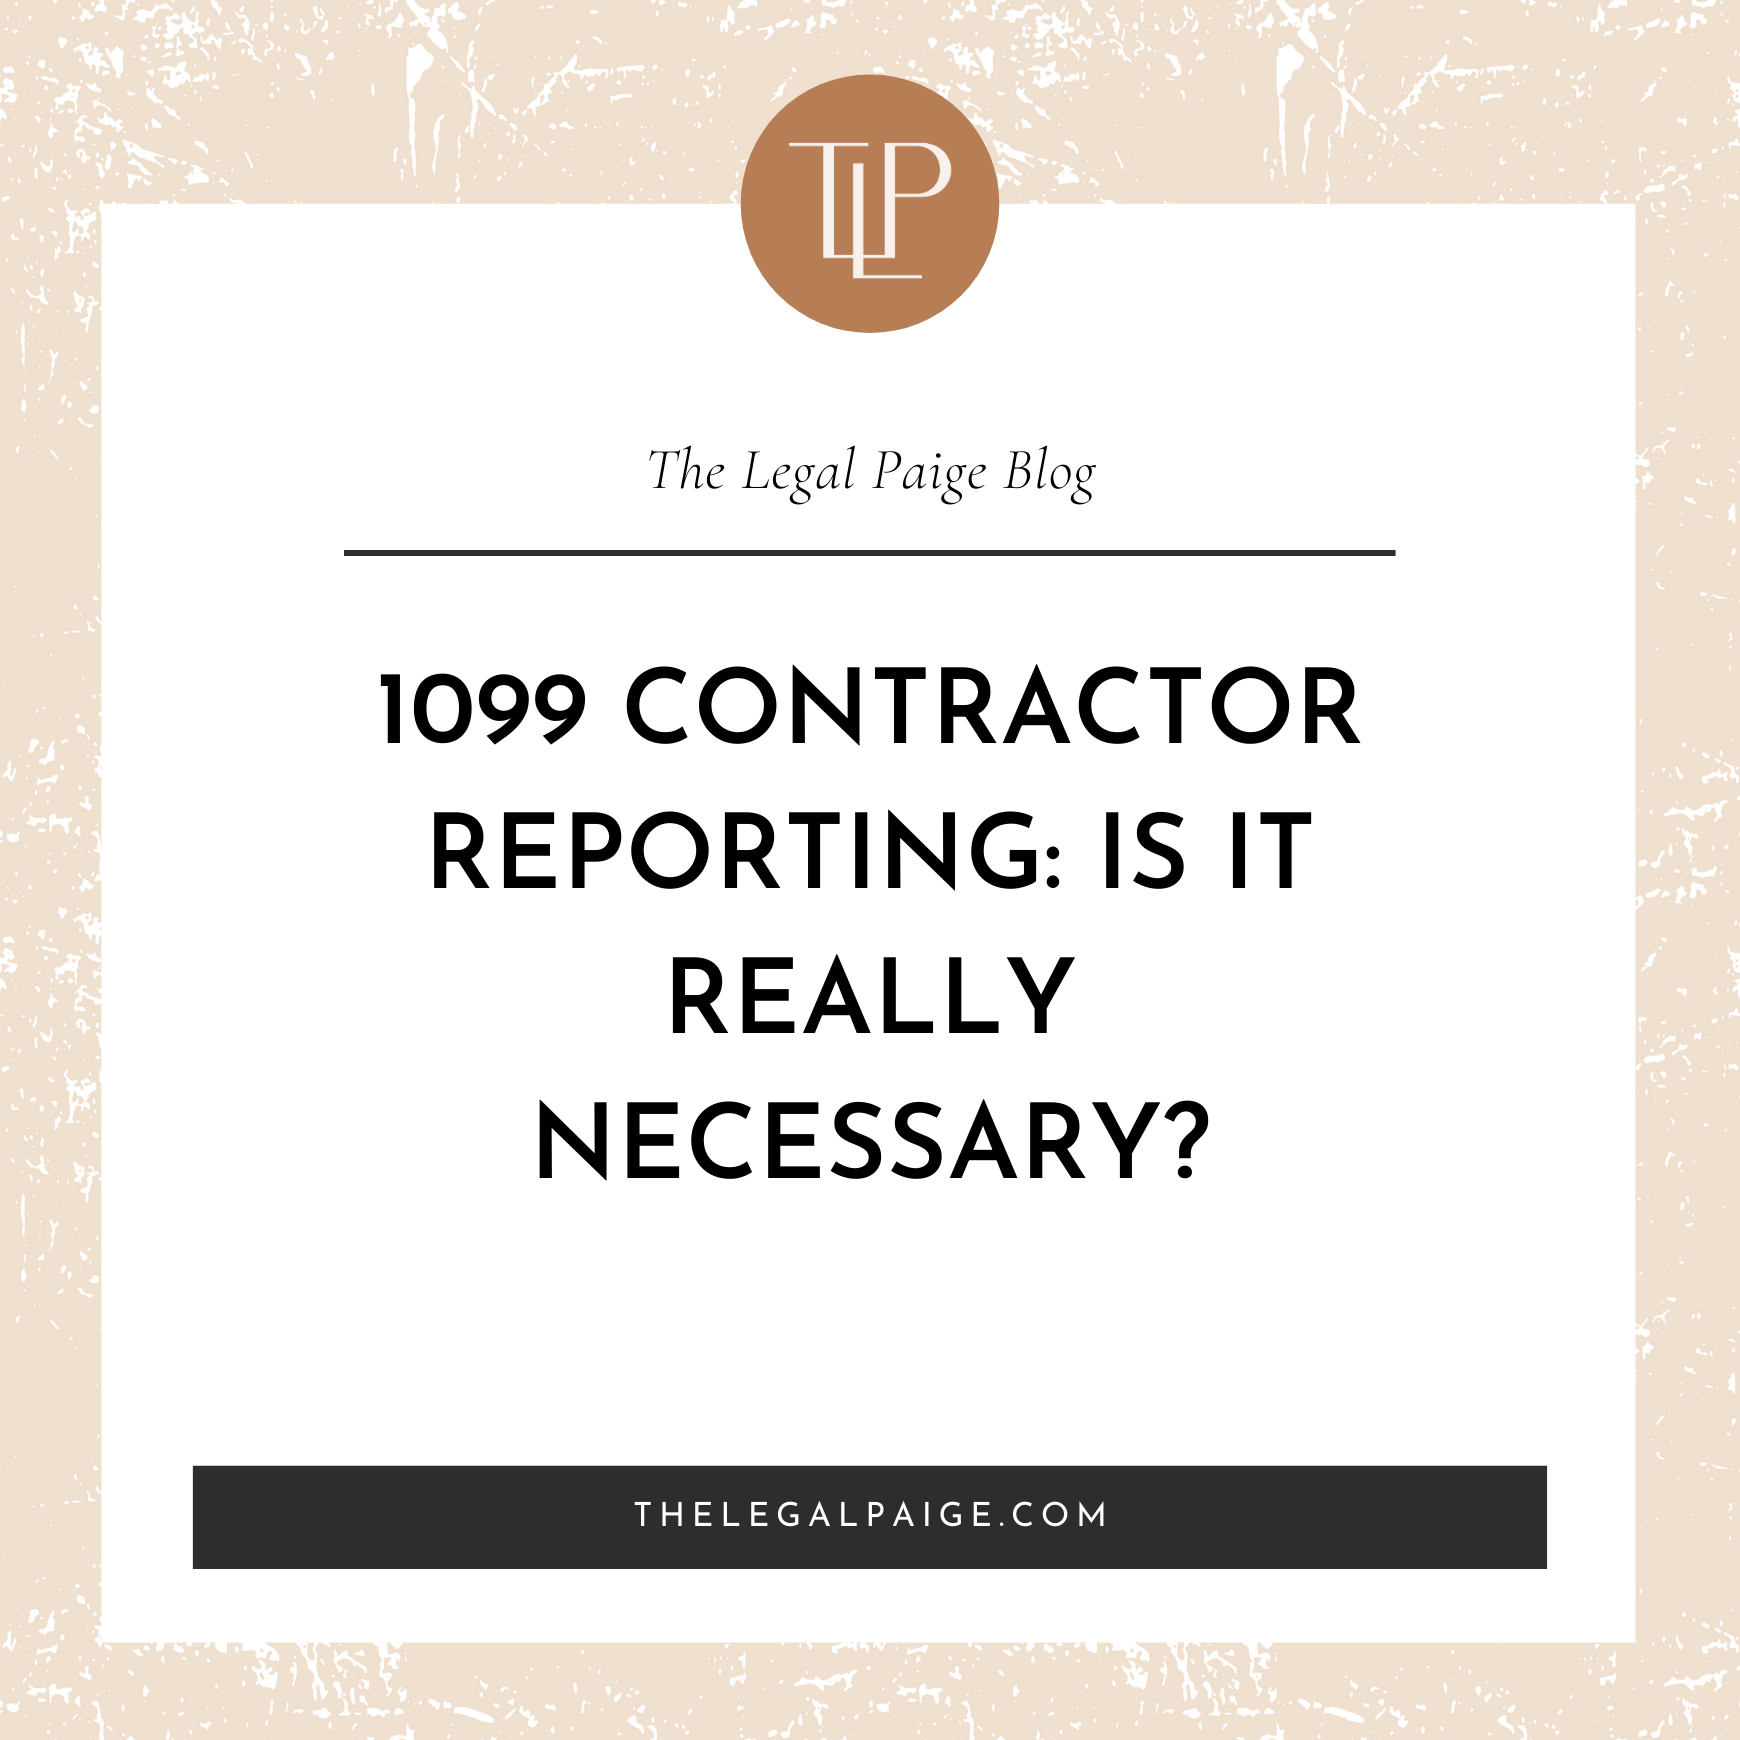 1099 Contractor Reporting: Is it Really Necessary?